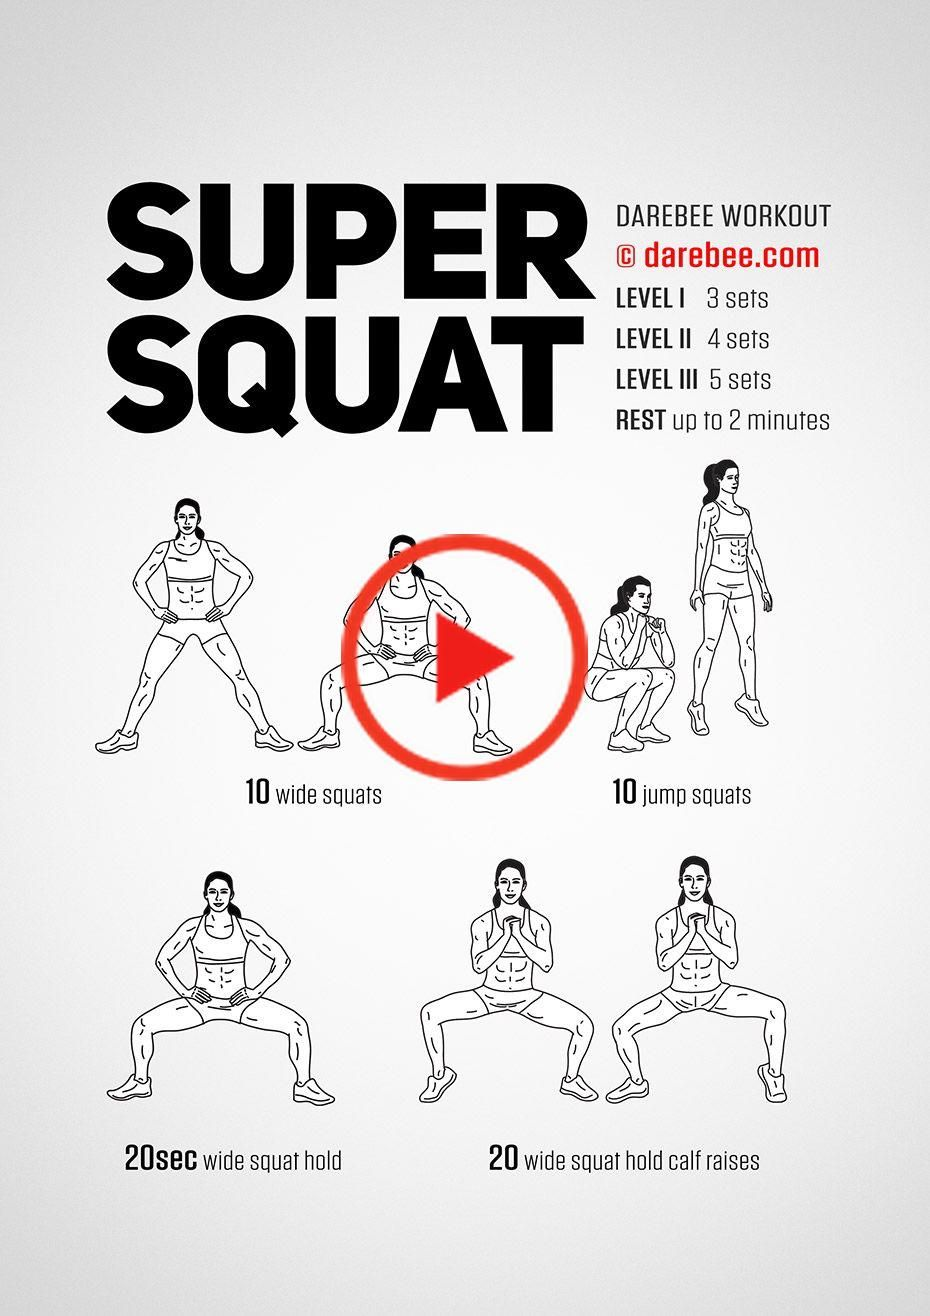 Super Squat Workout by DAREBEE #darebee #workout #fitness #glutes #squatchallenge